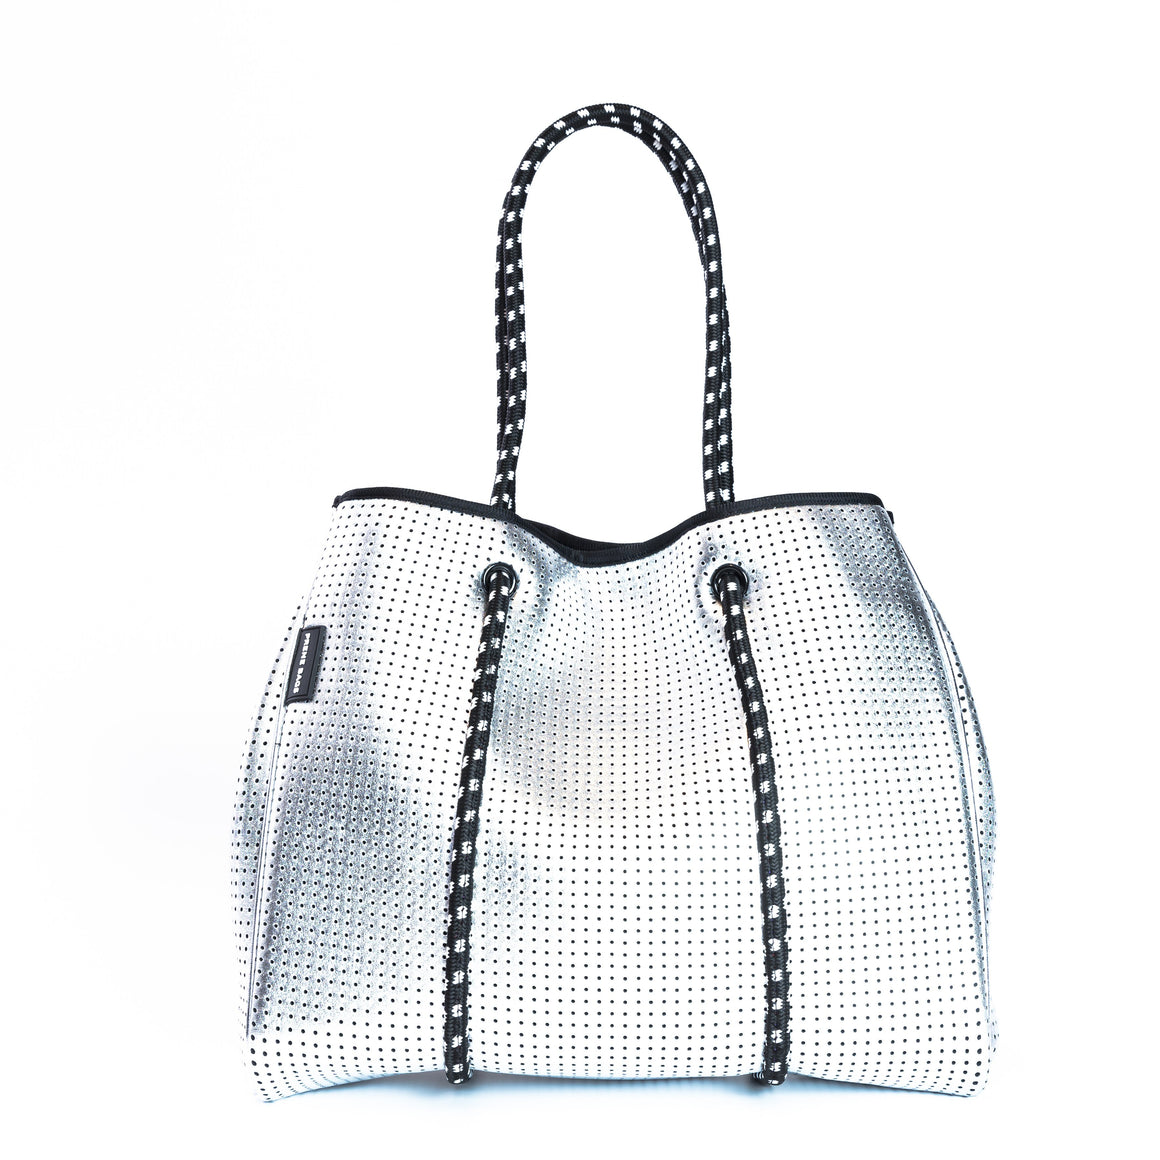 Prene Sterling Bag (Metallic Silver)